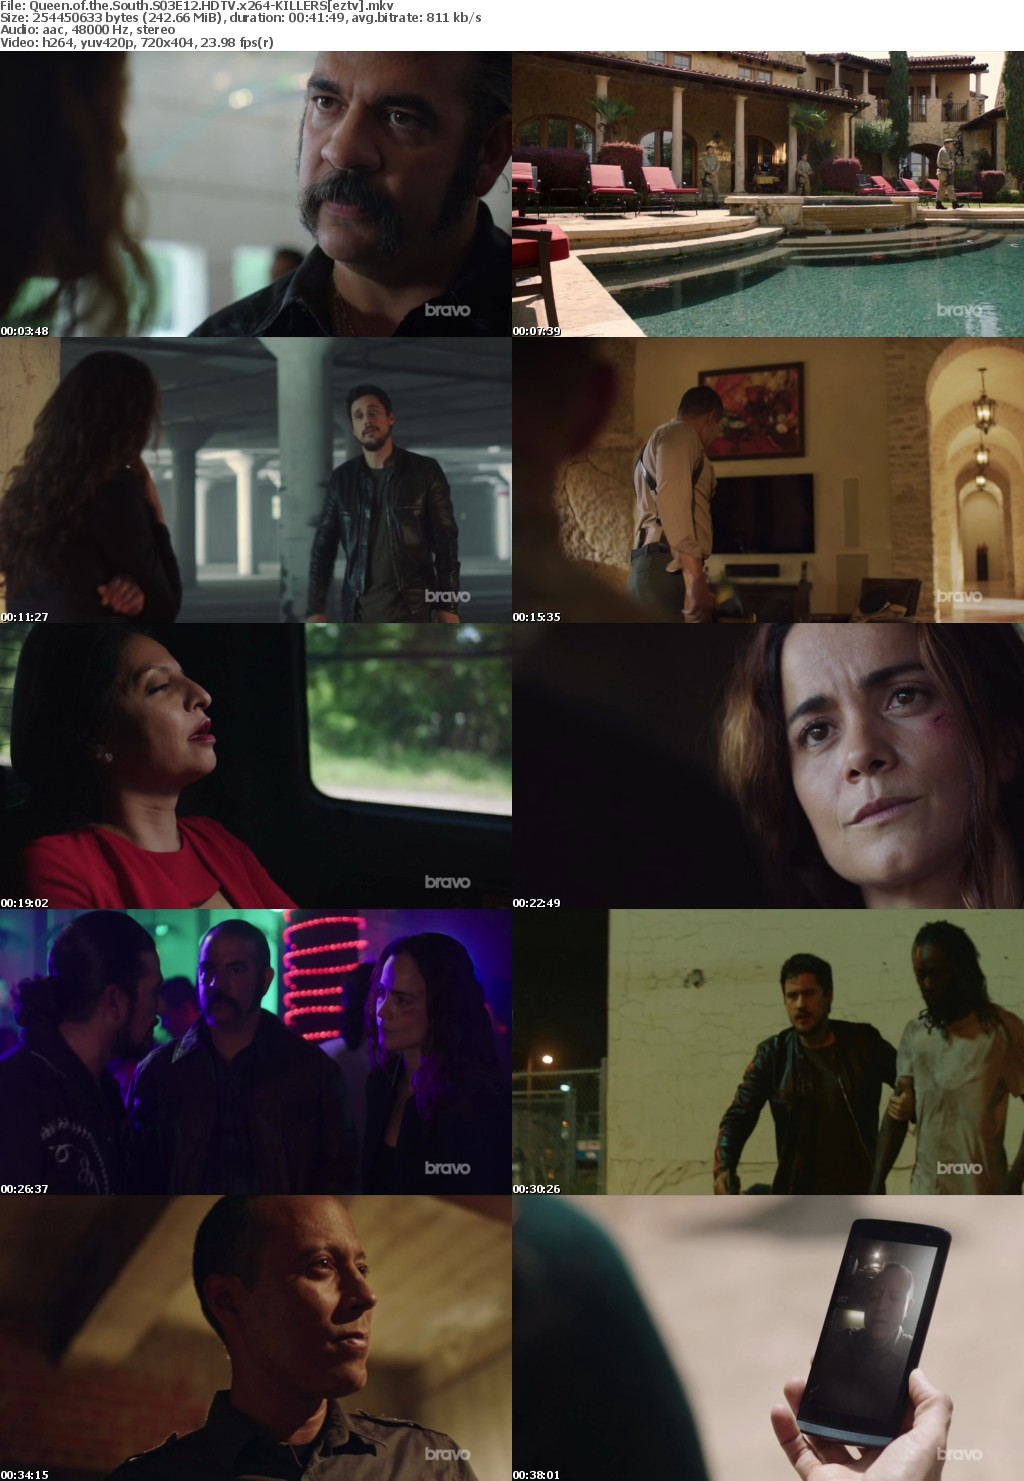 Queen of the South S03E12 HDTV x264-KILLERS